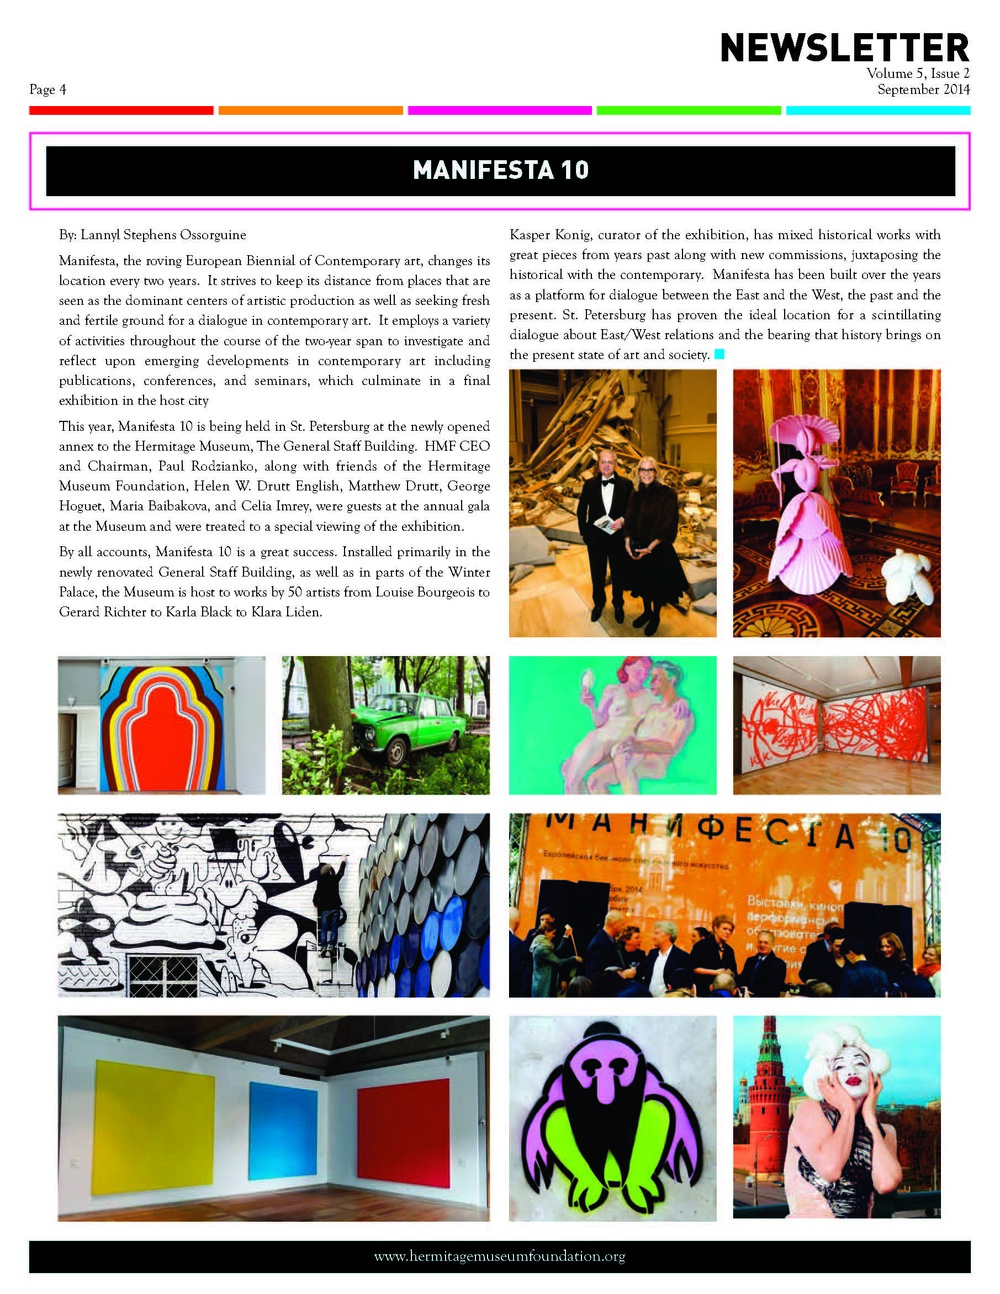 Hermitage_Museum_Foundation_Newsletter_FINAL_Sept._2014_Page_4.jpg